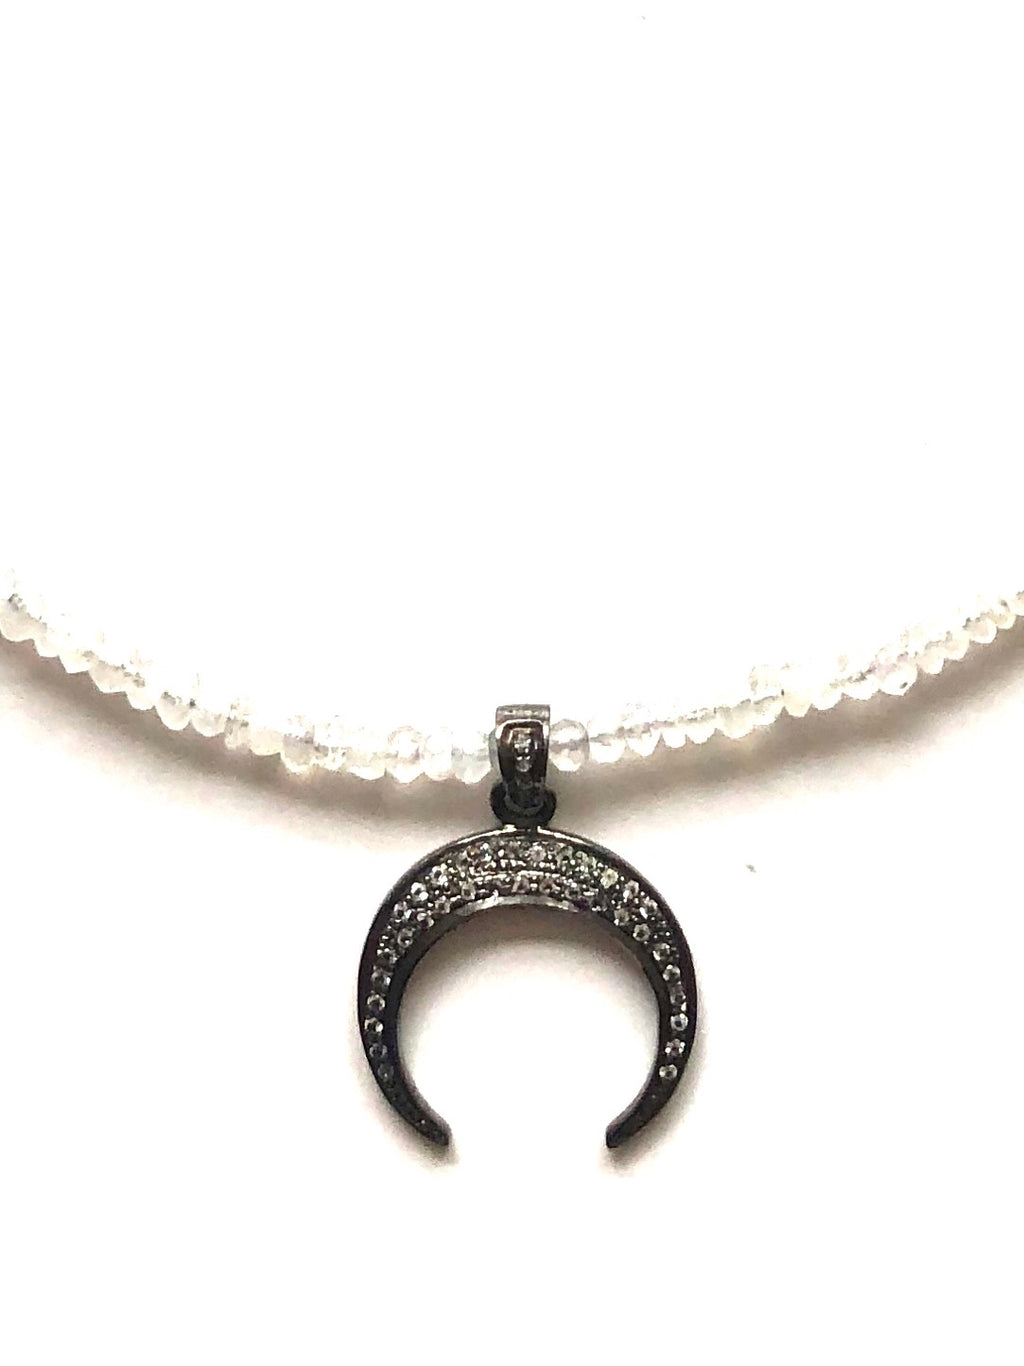 Moonstone and Pave Crescent Moon Necklace